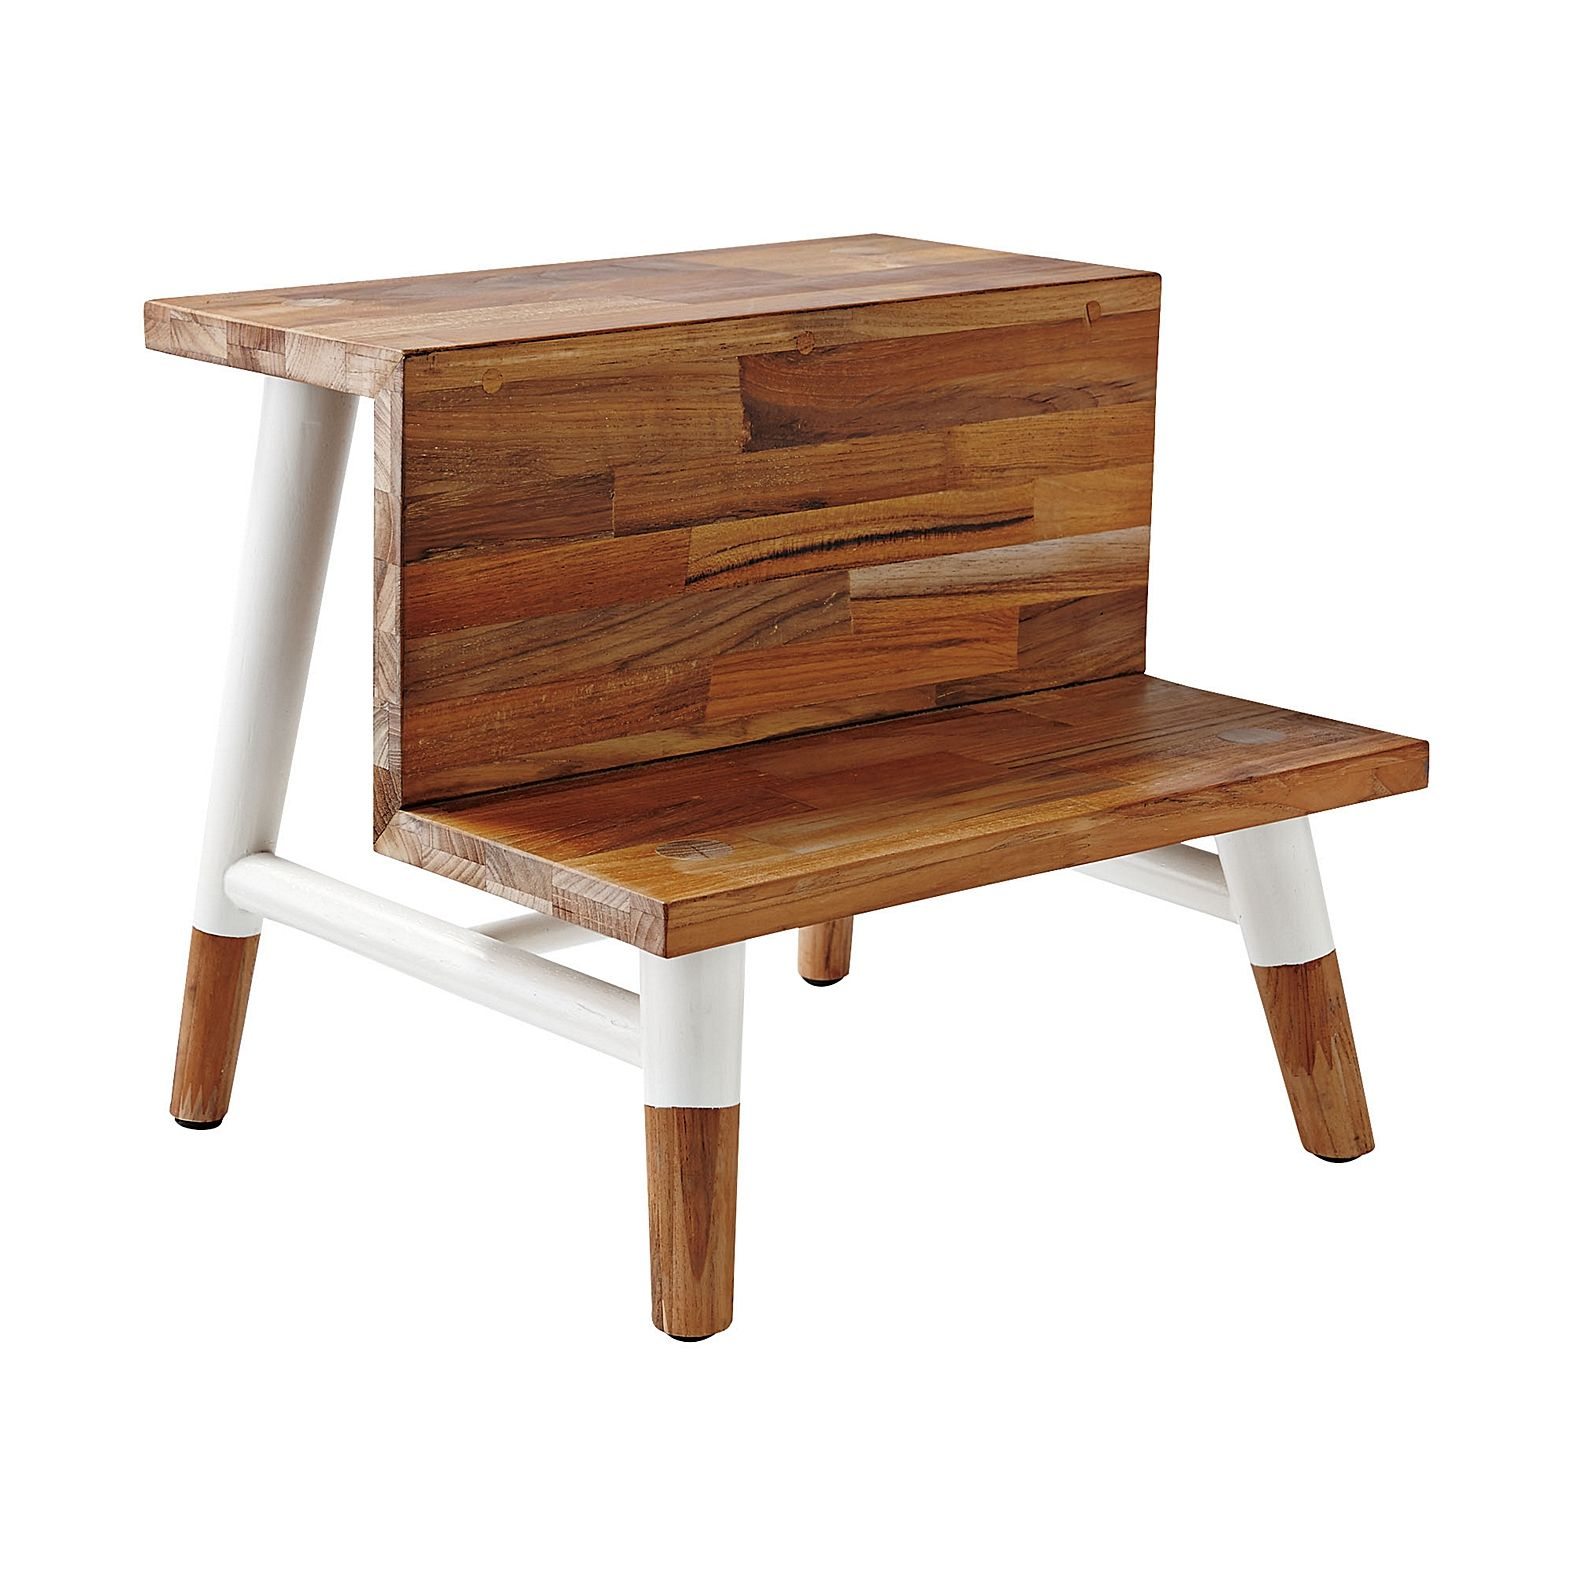 Teak Step Stool Serena Amp Lily For The Home Bath